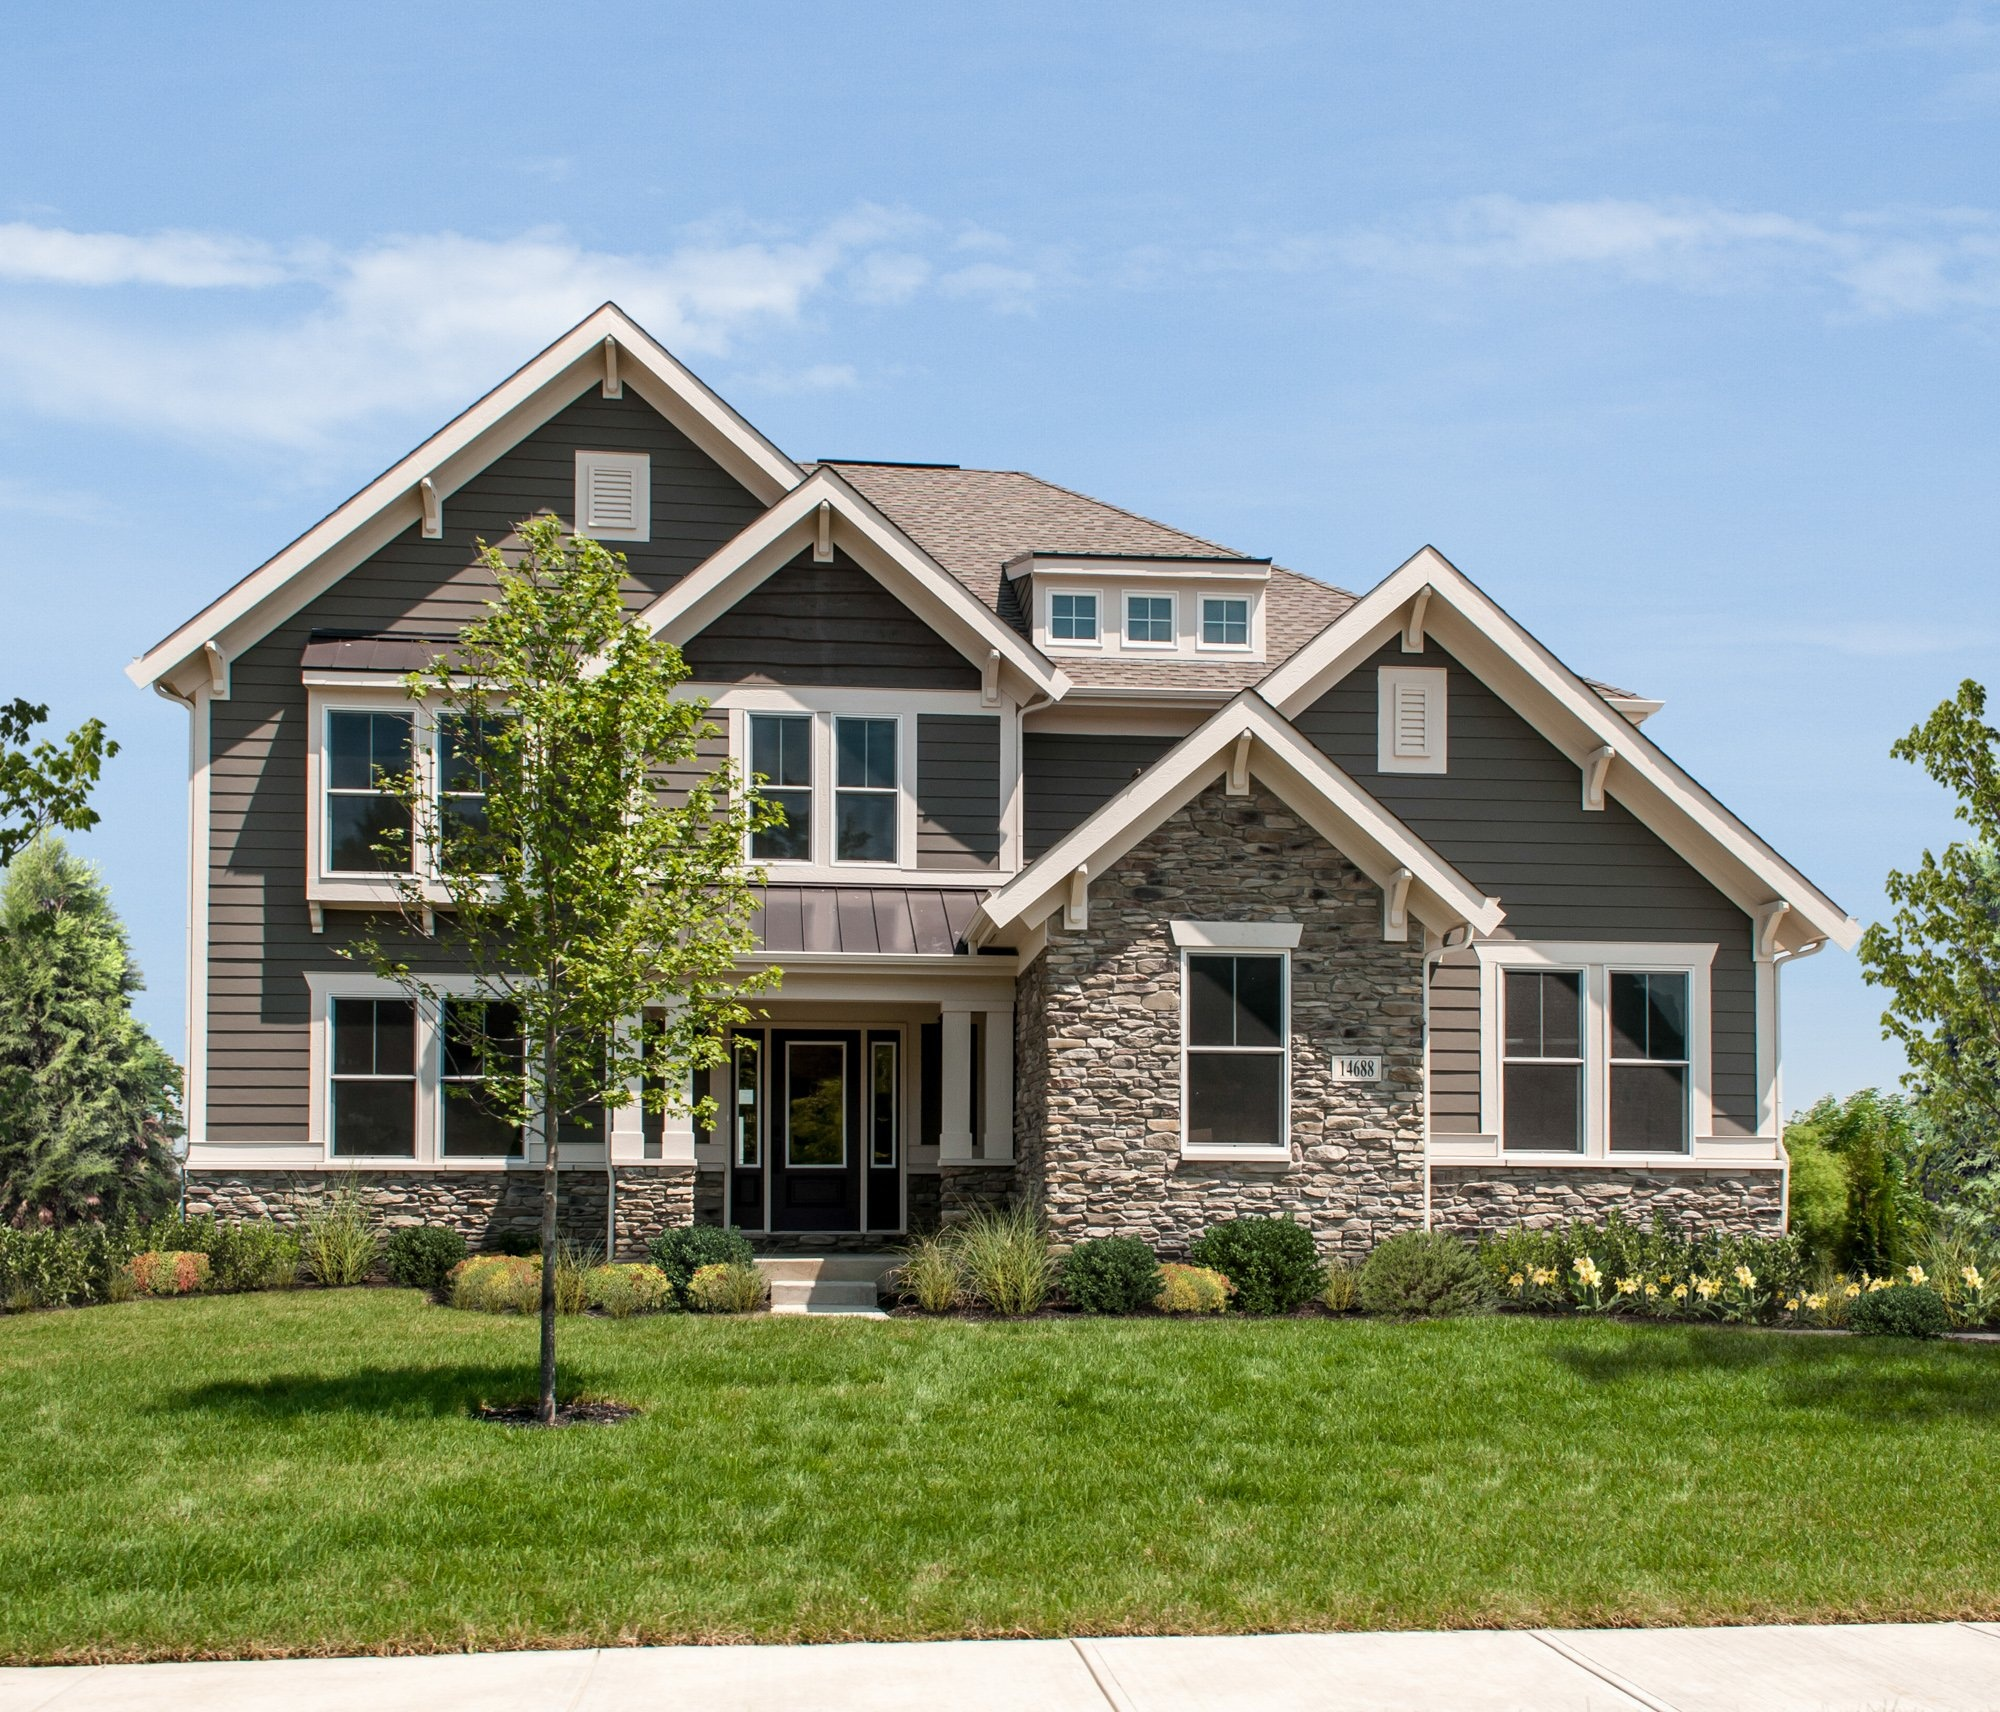 Zillows Homes: Total Value Of All US Homes Is $27.5 Trillion